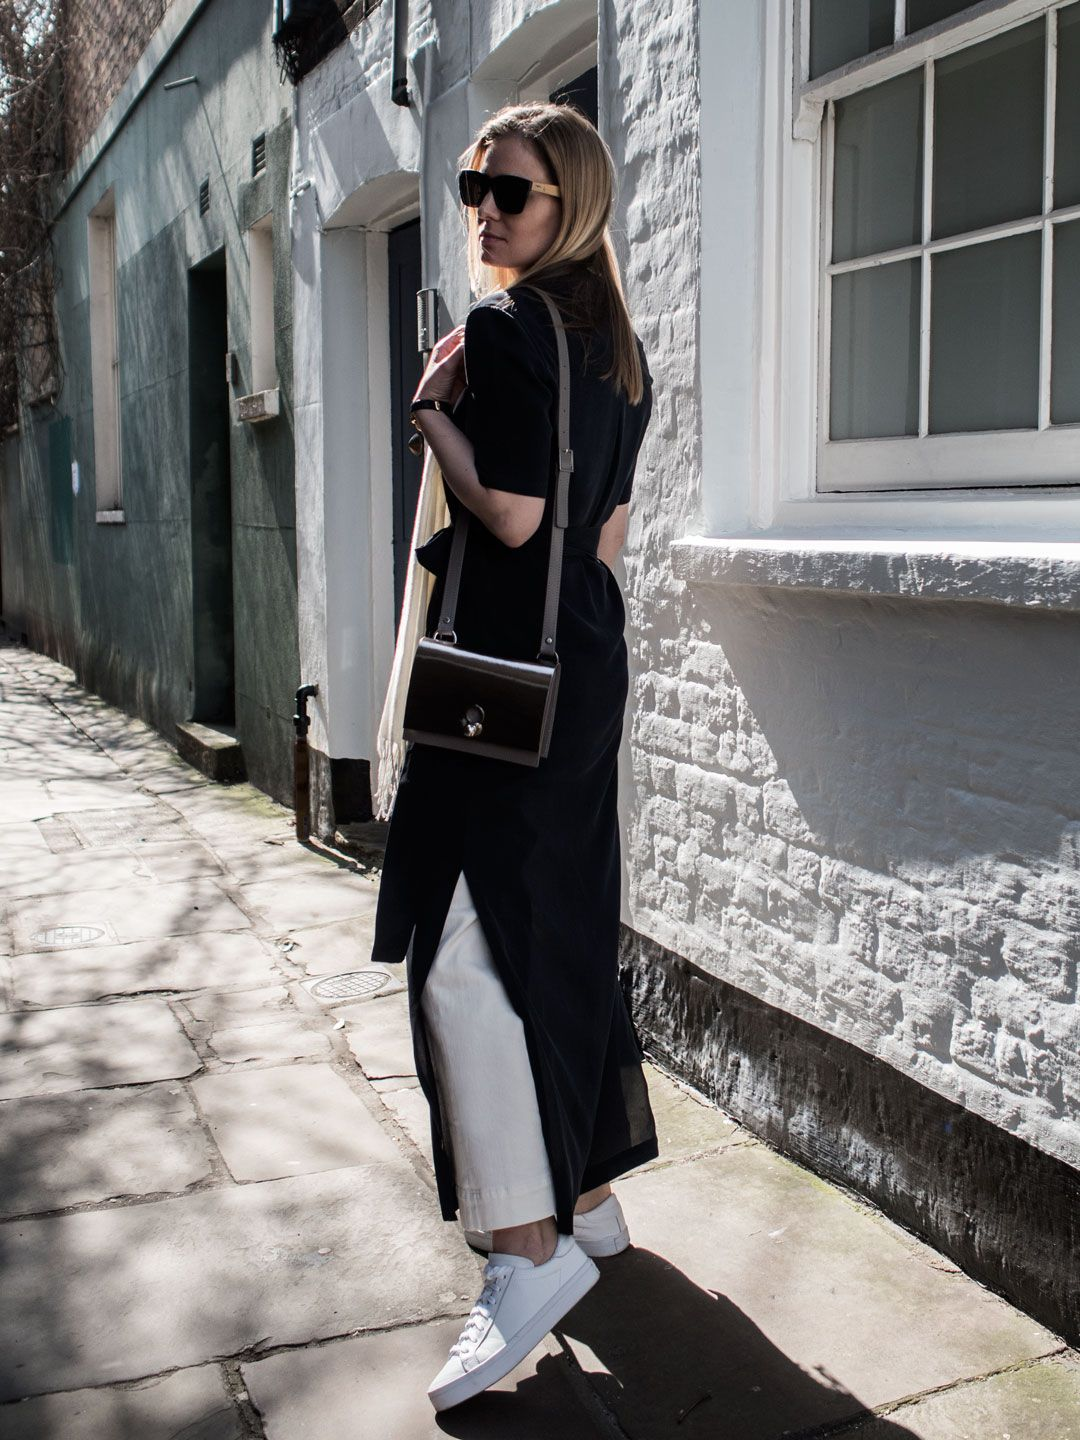 Dressing Up Jeans With A Marina London Dress | Style